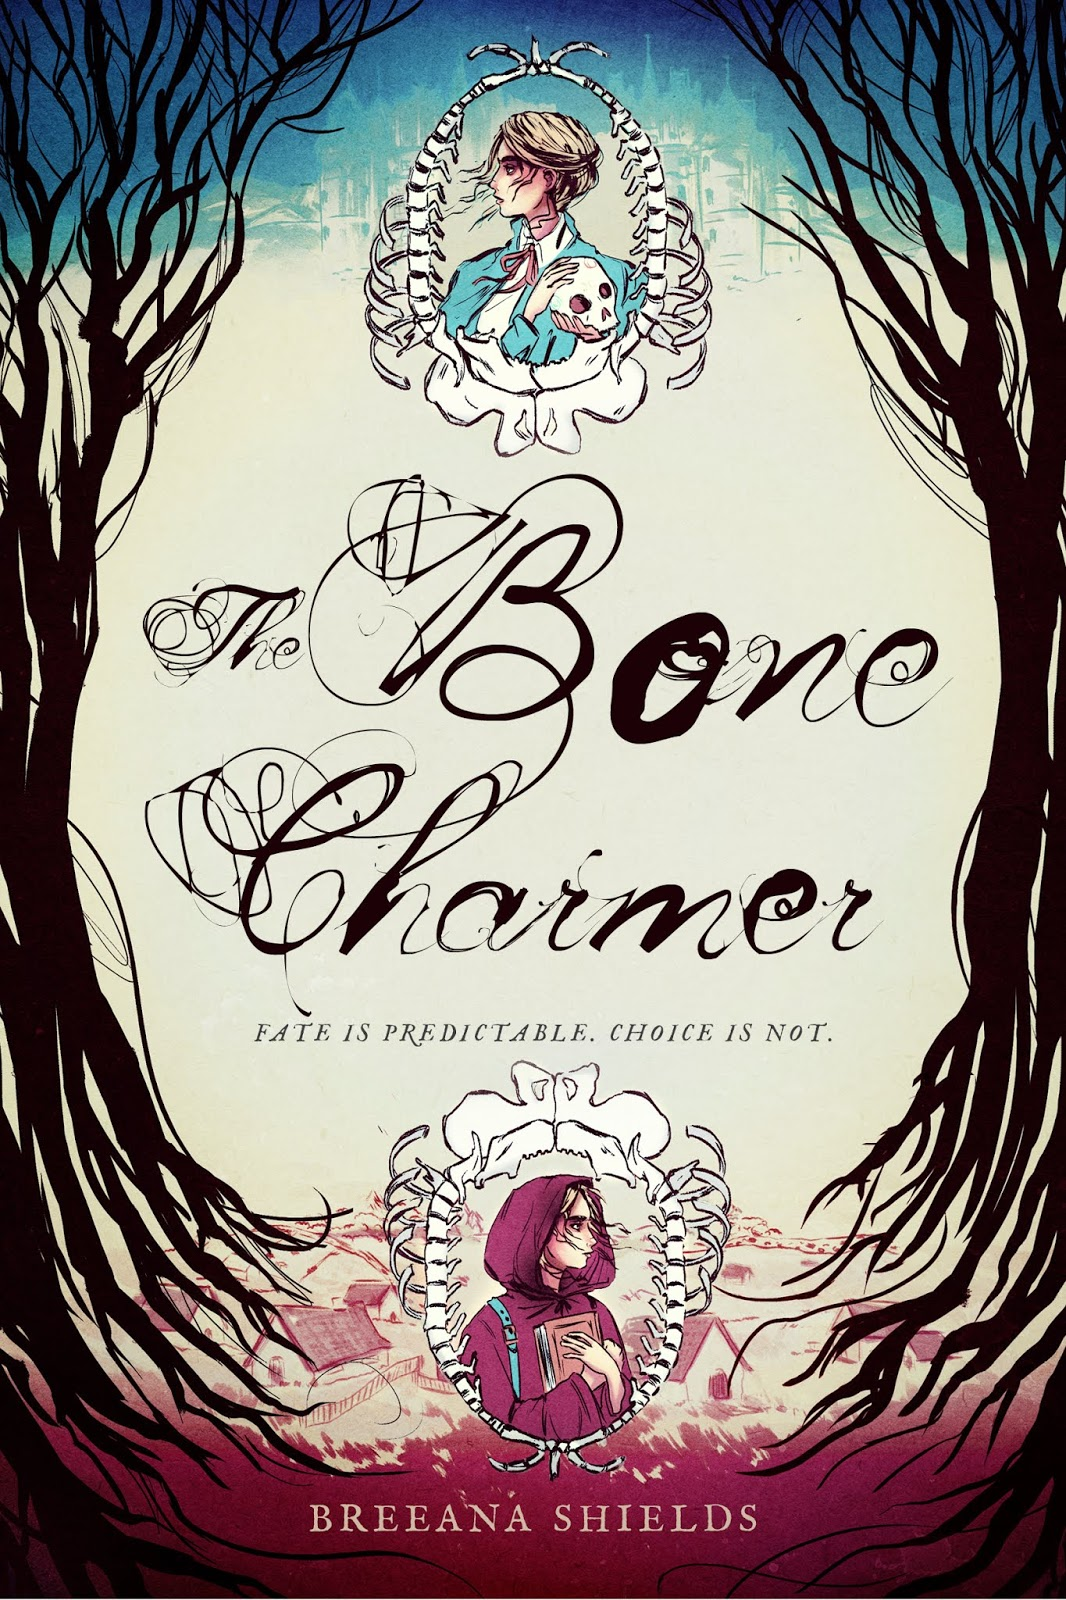 Blog Tour & Giveaway: The Bone Charmer by Breeana Shields